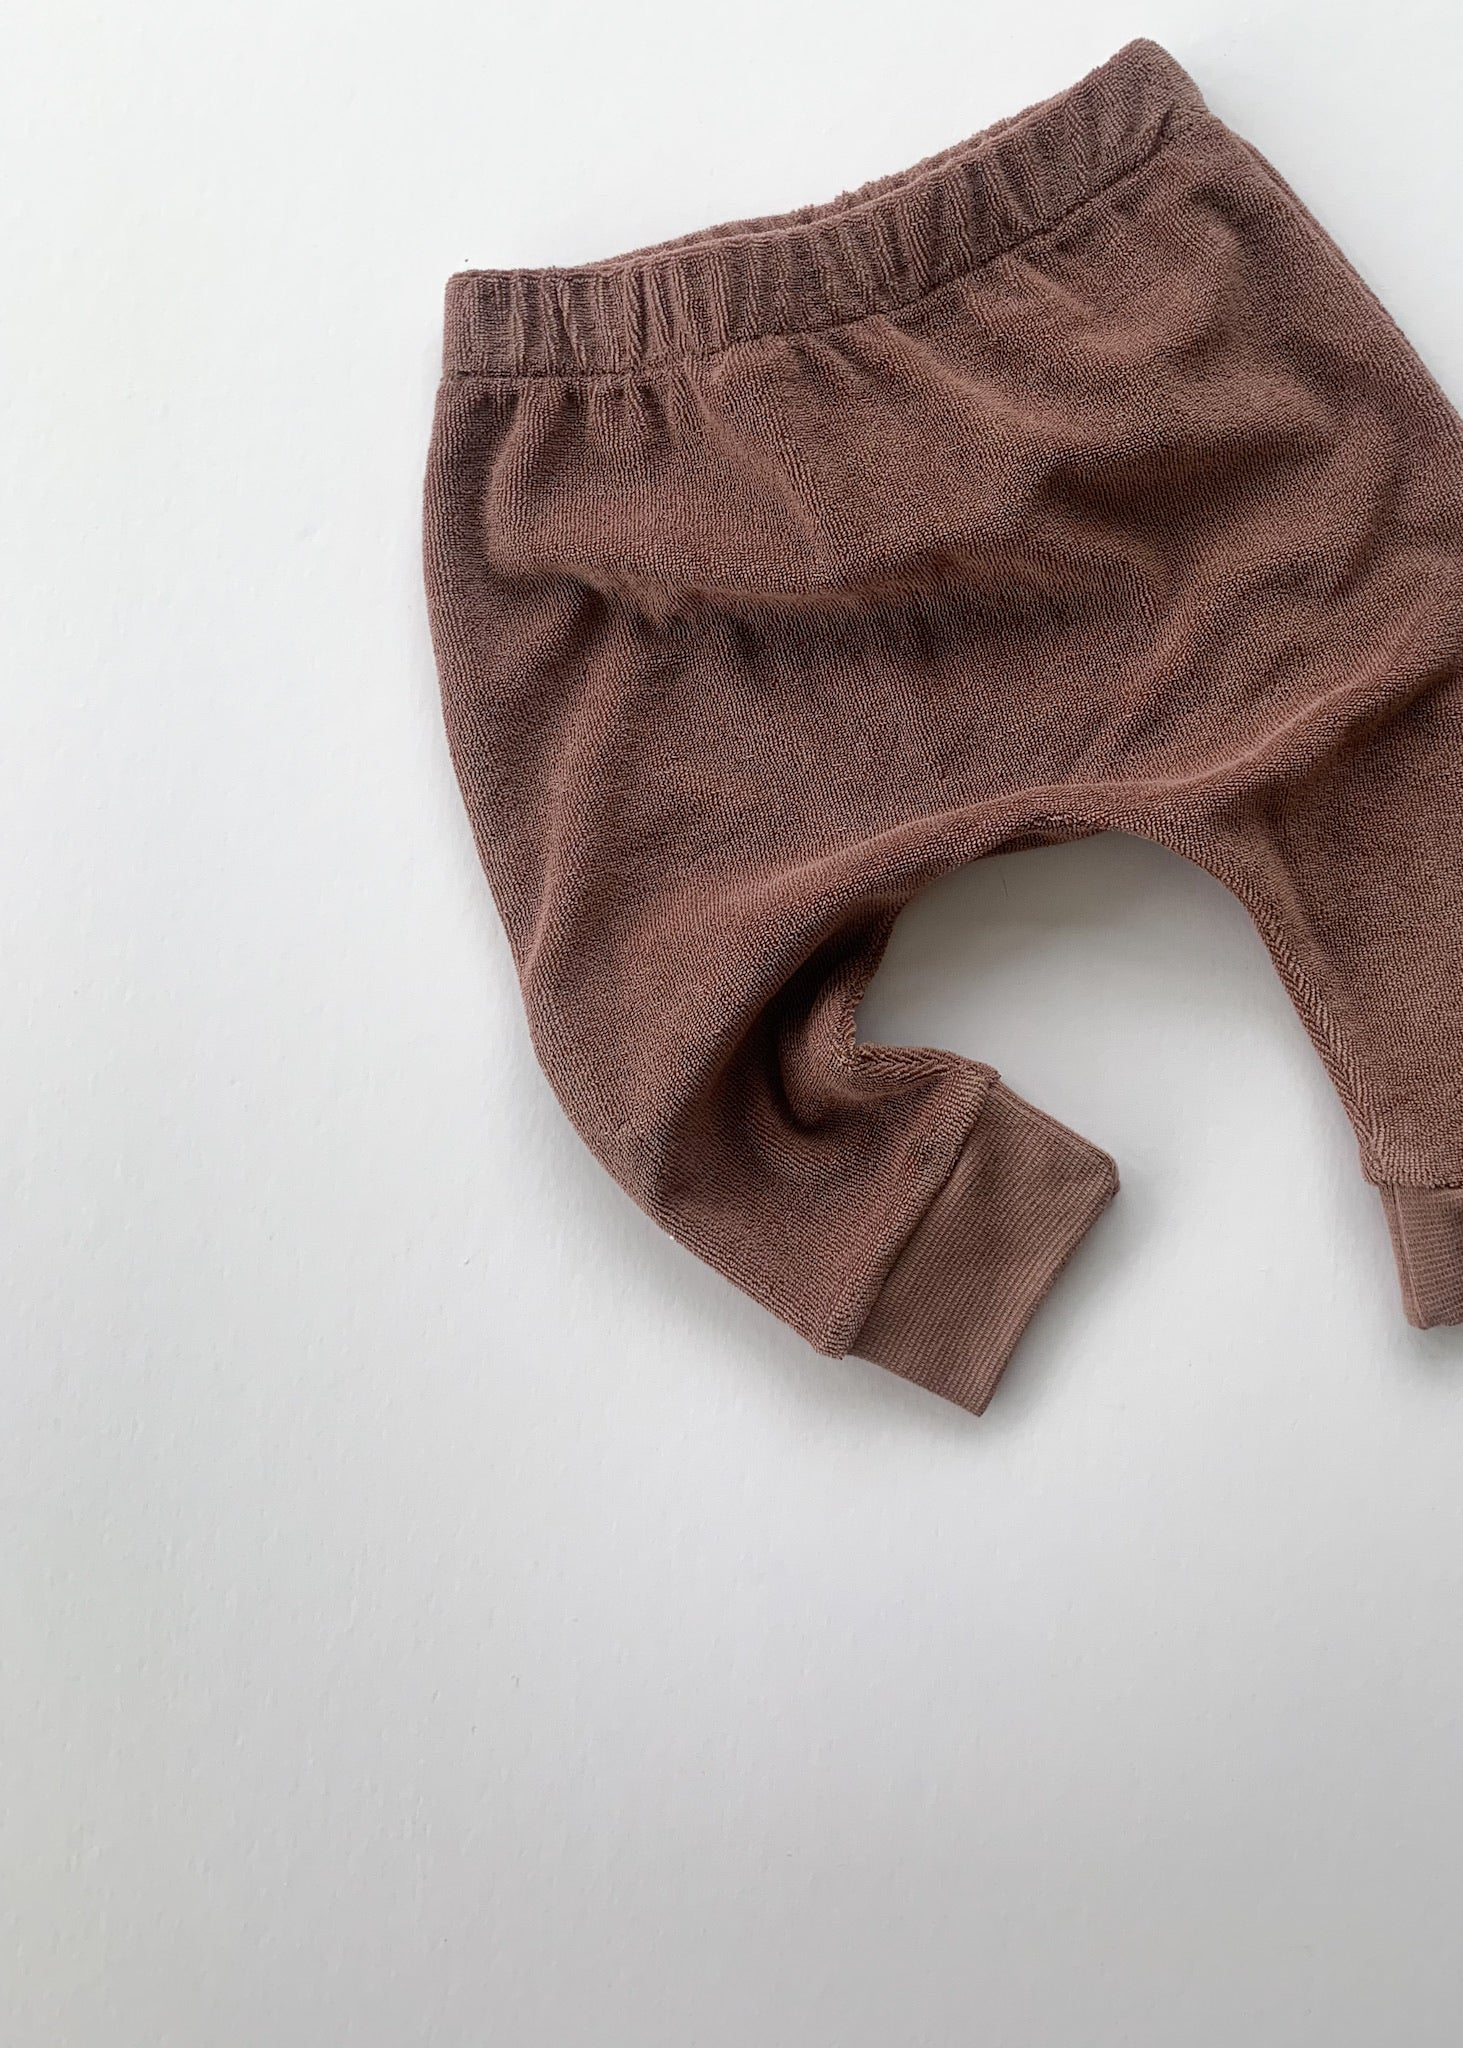 terry leggings | fig - Sadie:Baby UK